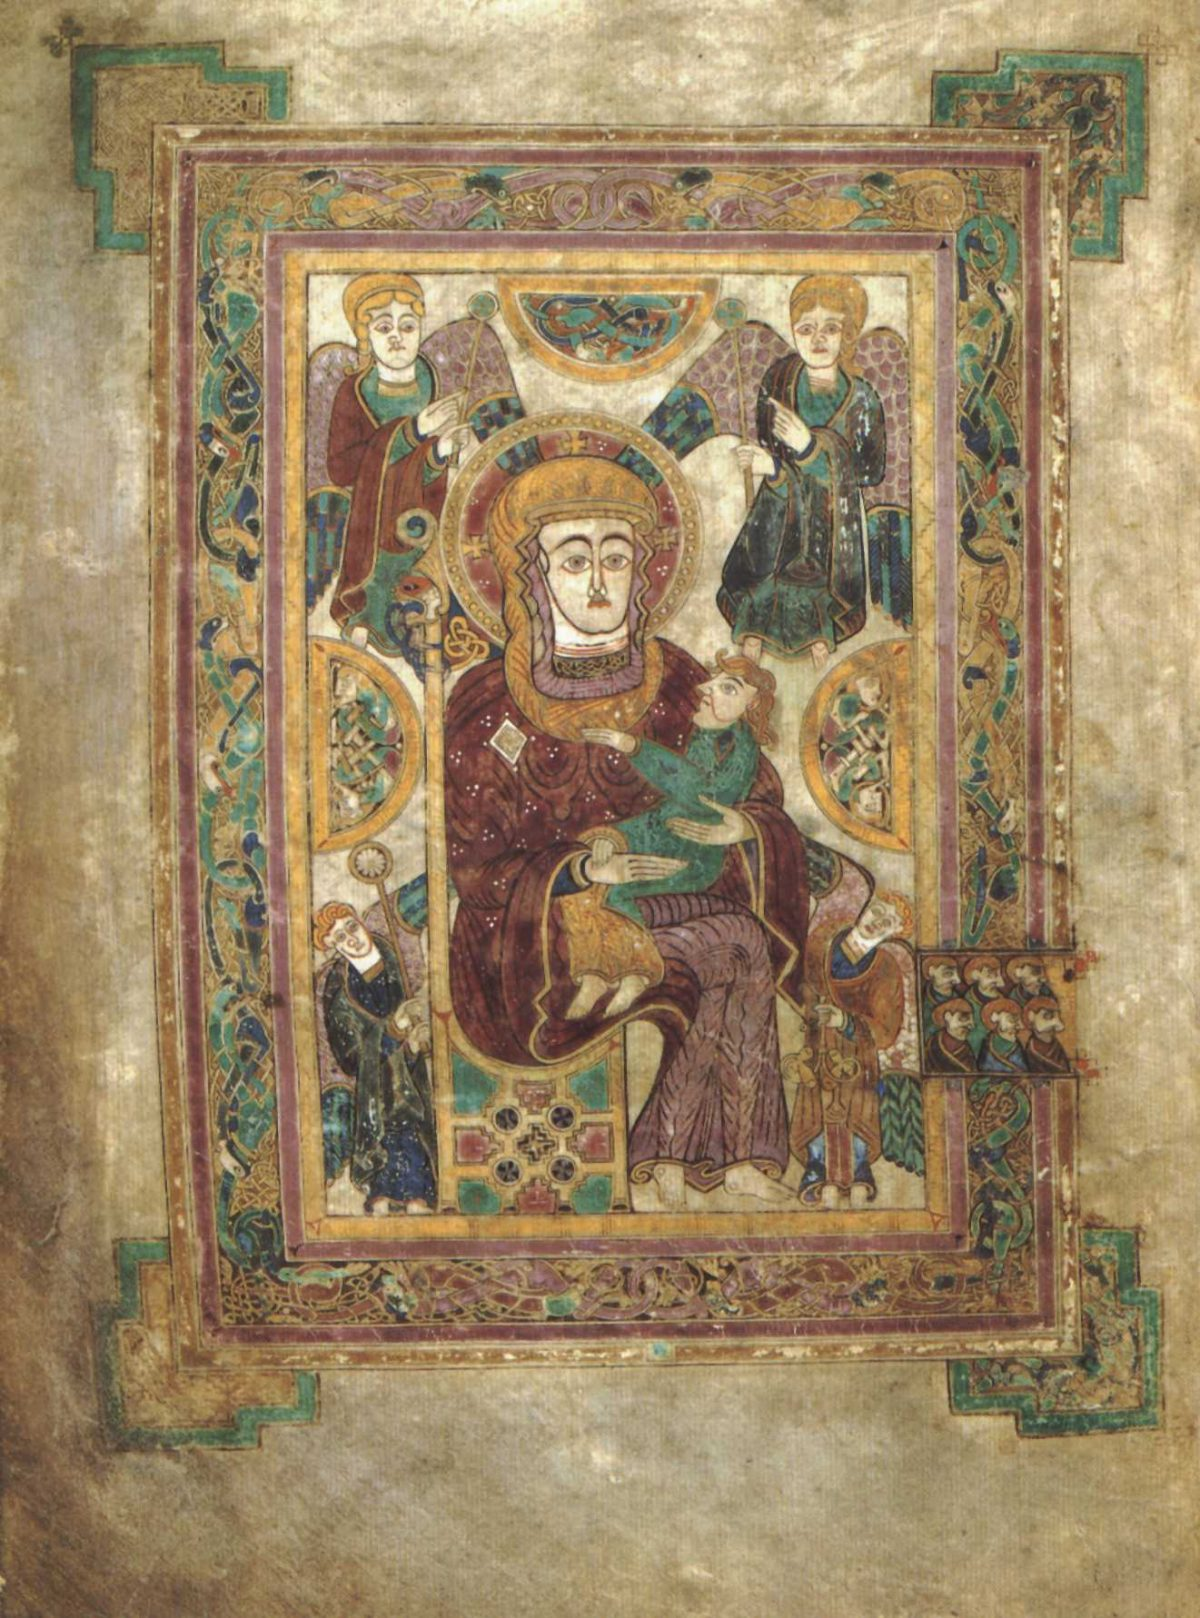 earliest Madonna and child - 800 AD